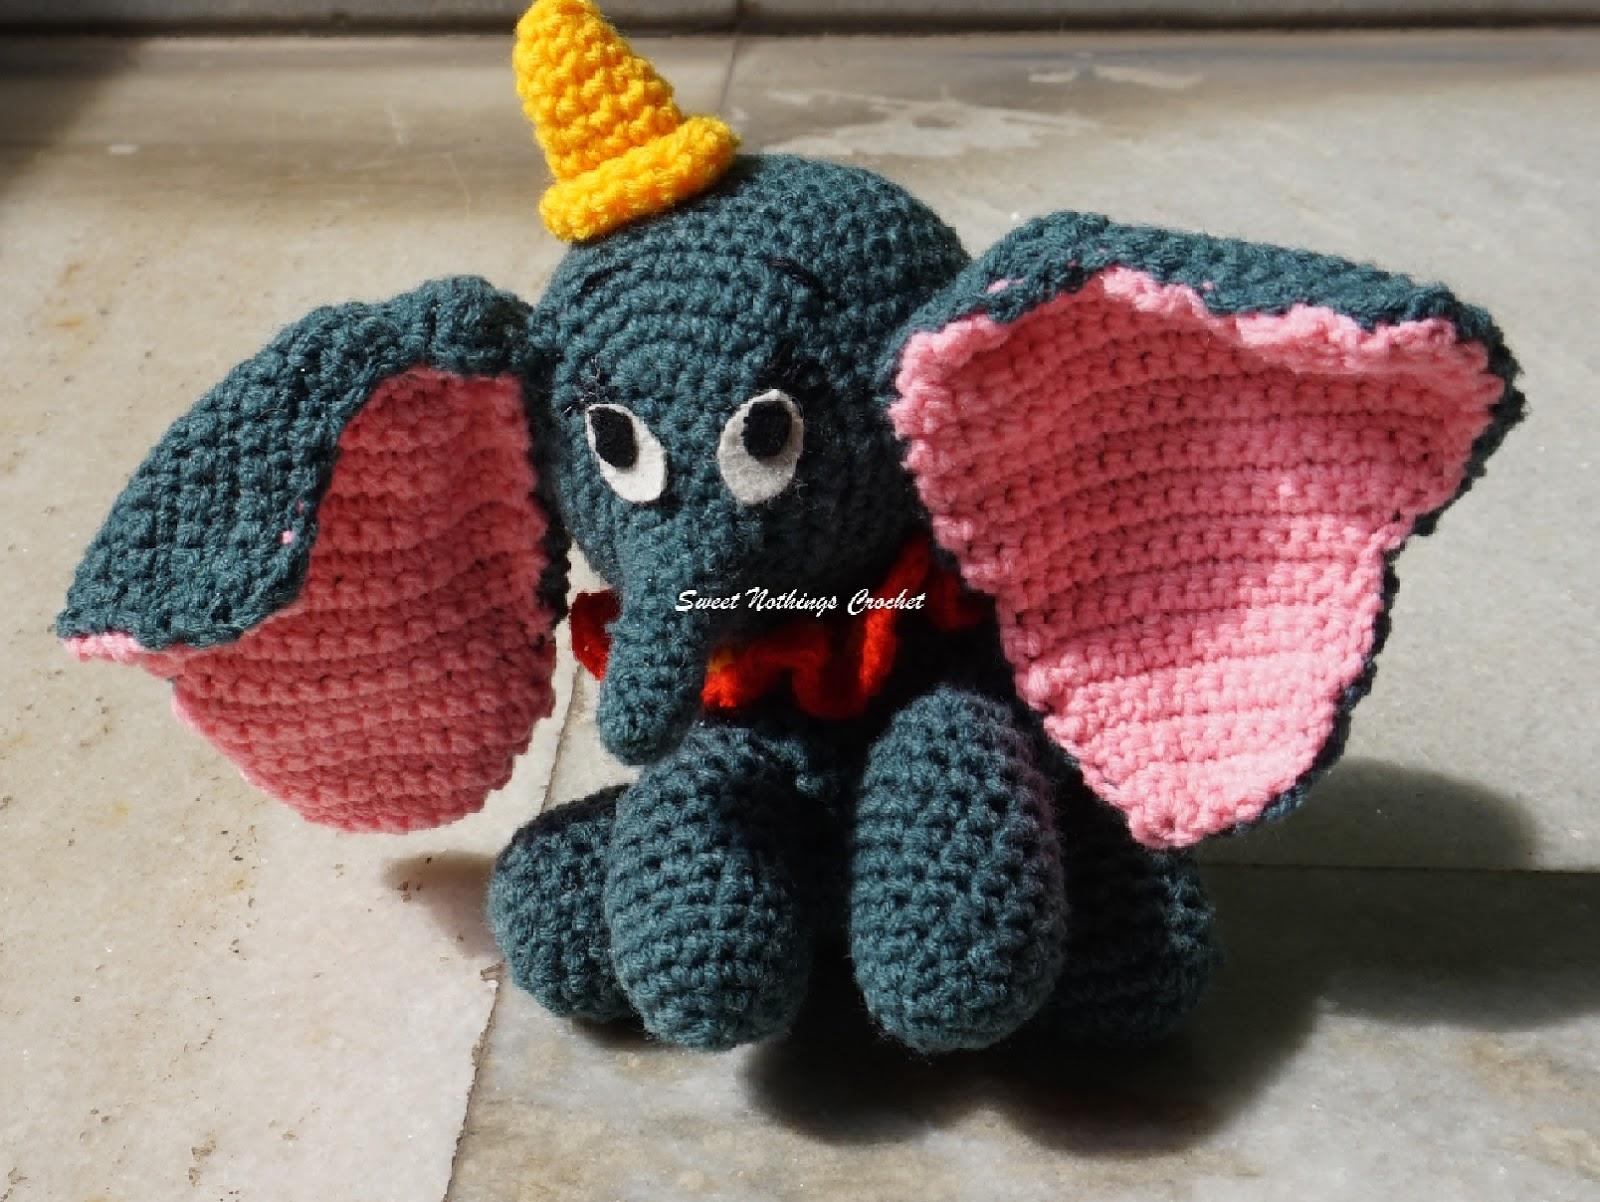 Sweet Nothings Crochet: MR  BIG EARS